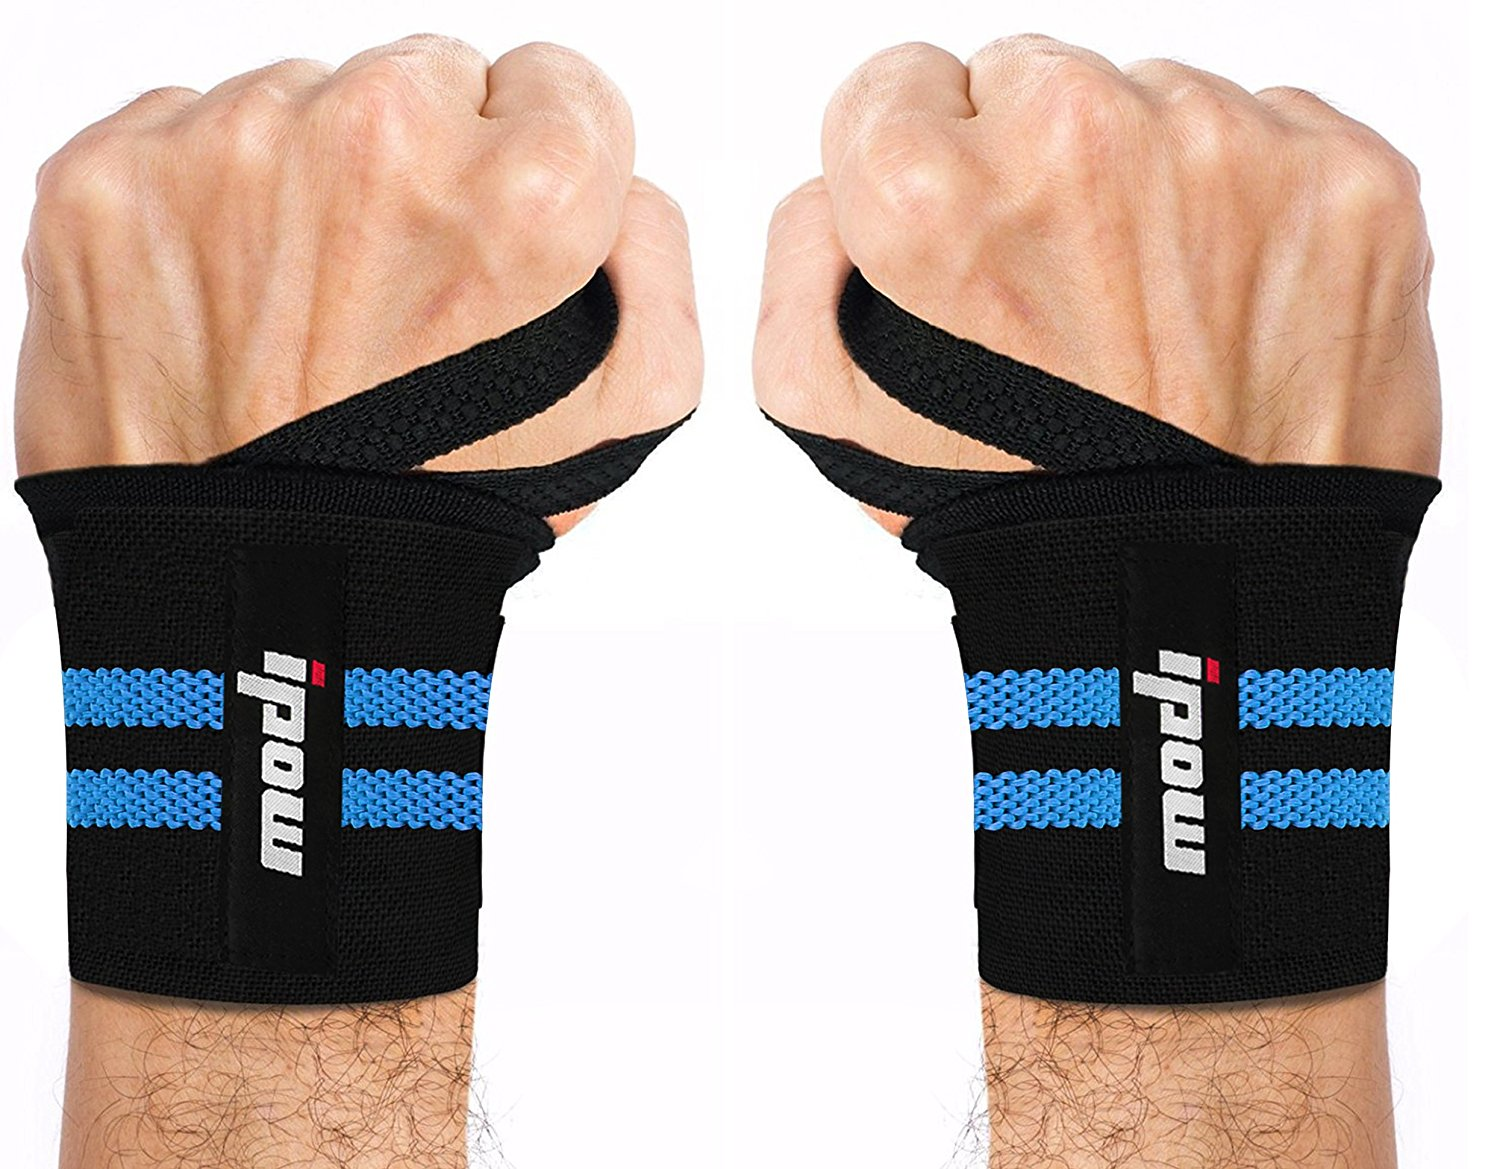 "IPOW Reversible Sports Wrist Brace with Thumb Stabilizer Adjustable 18.5"" Training Wrist Support Wrap GYM Bandage... by IPOW"